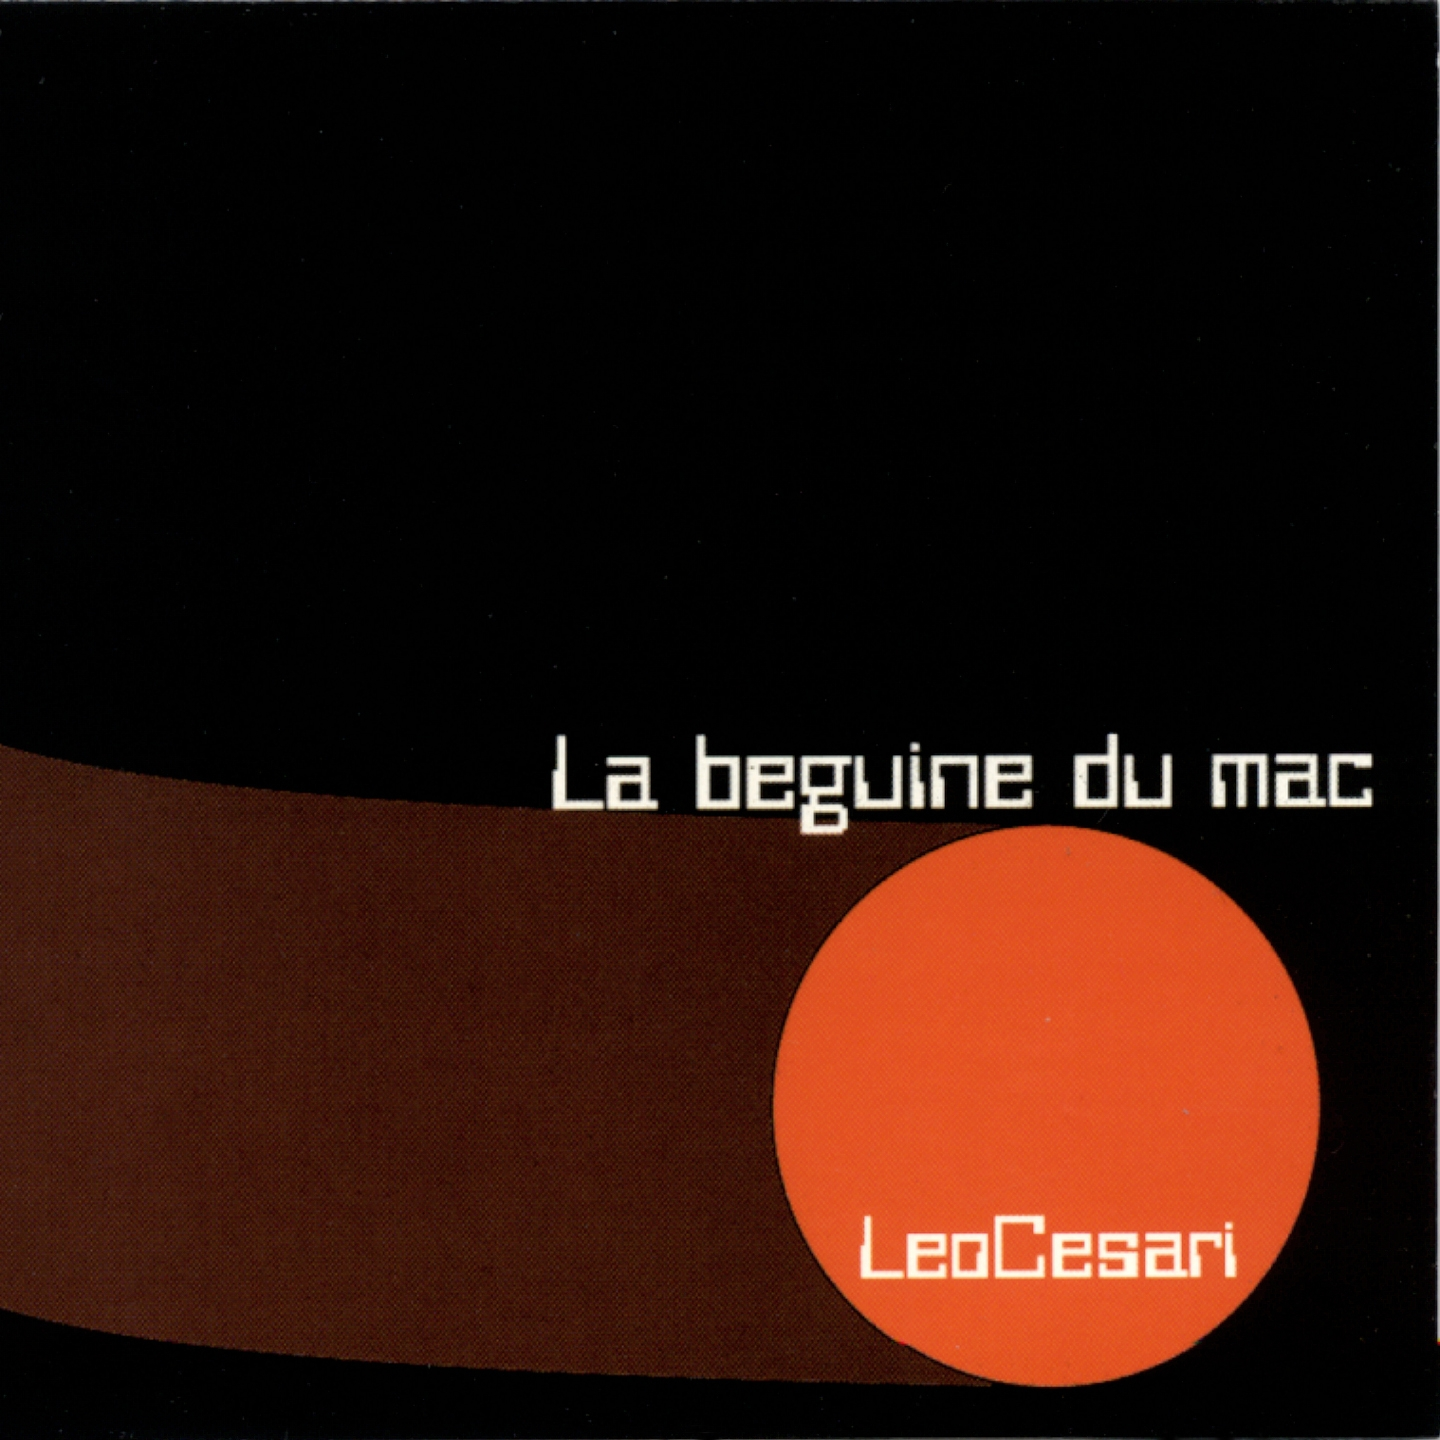 La beguine du mac